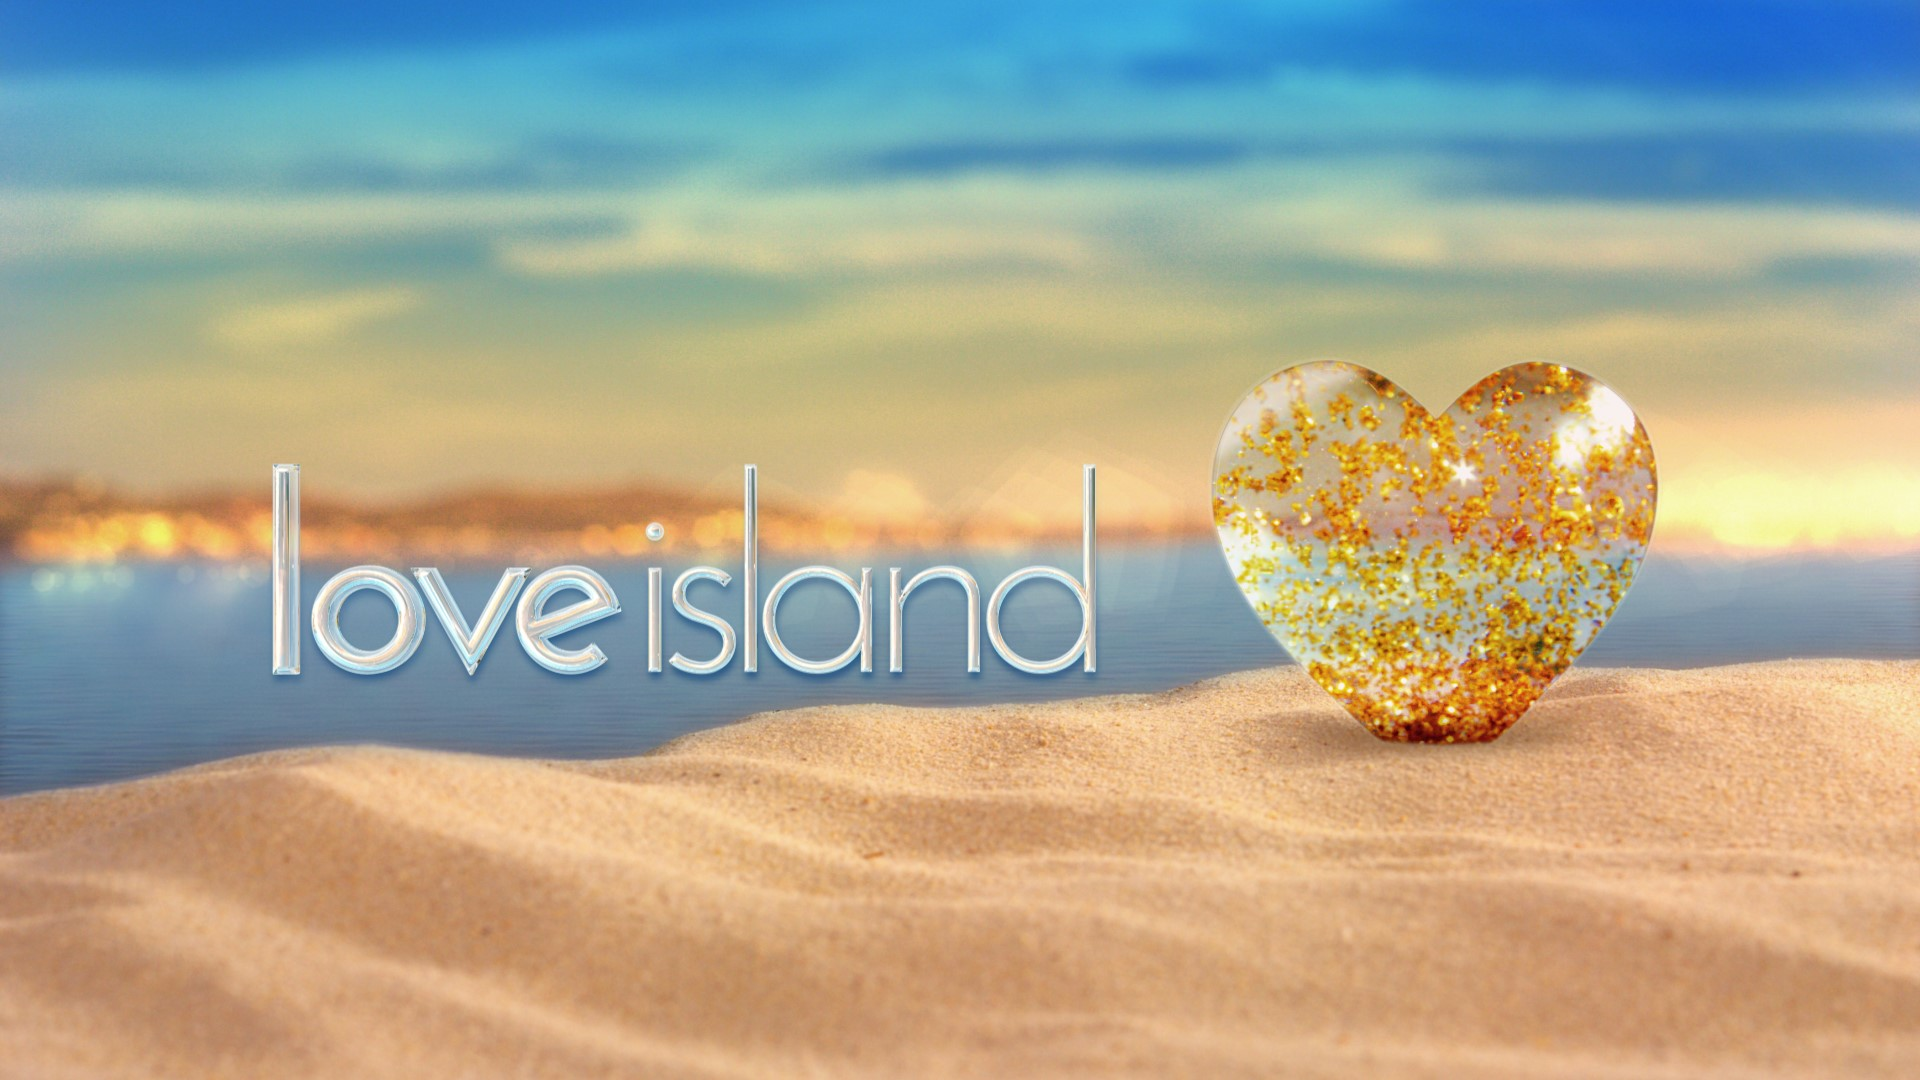 LOOKING FOR LOVE? Love Island seeks single contestants from Somerset